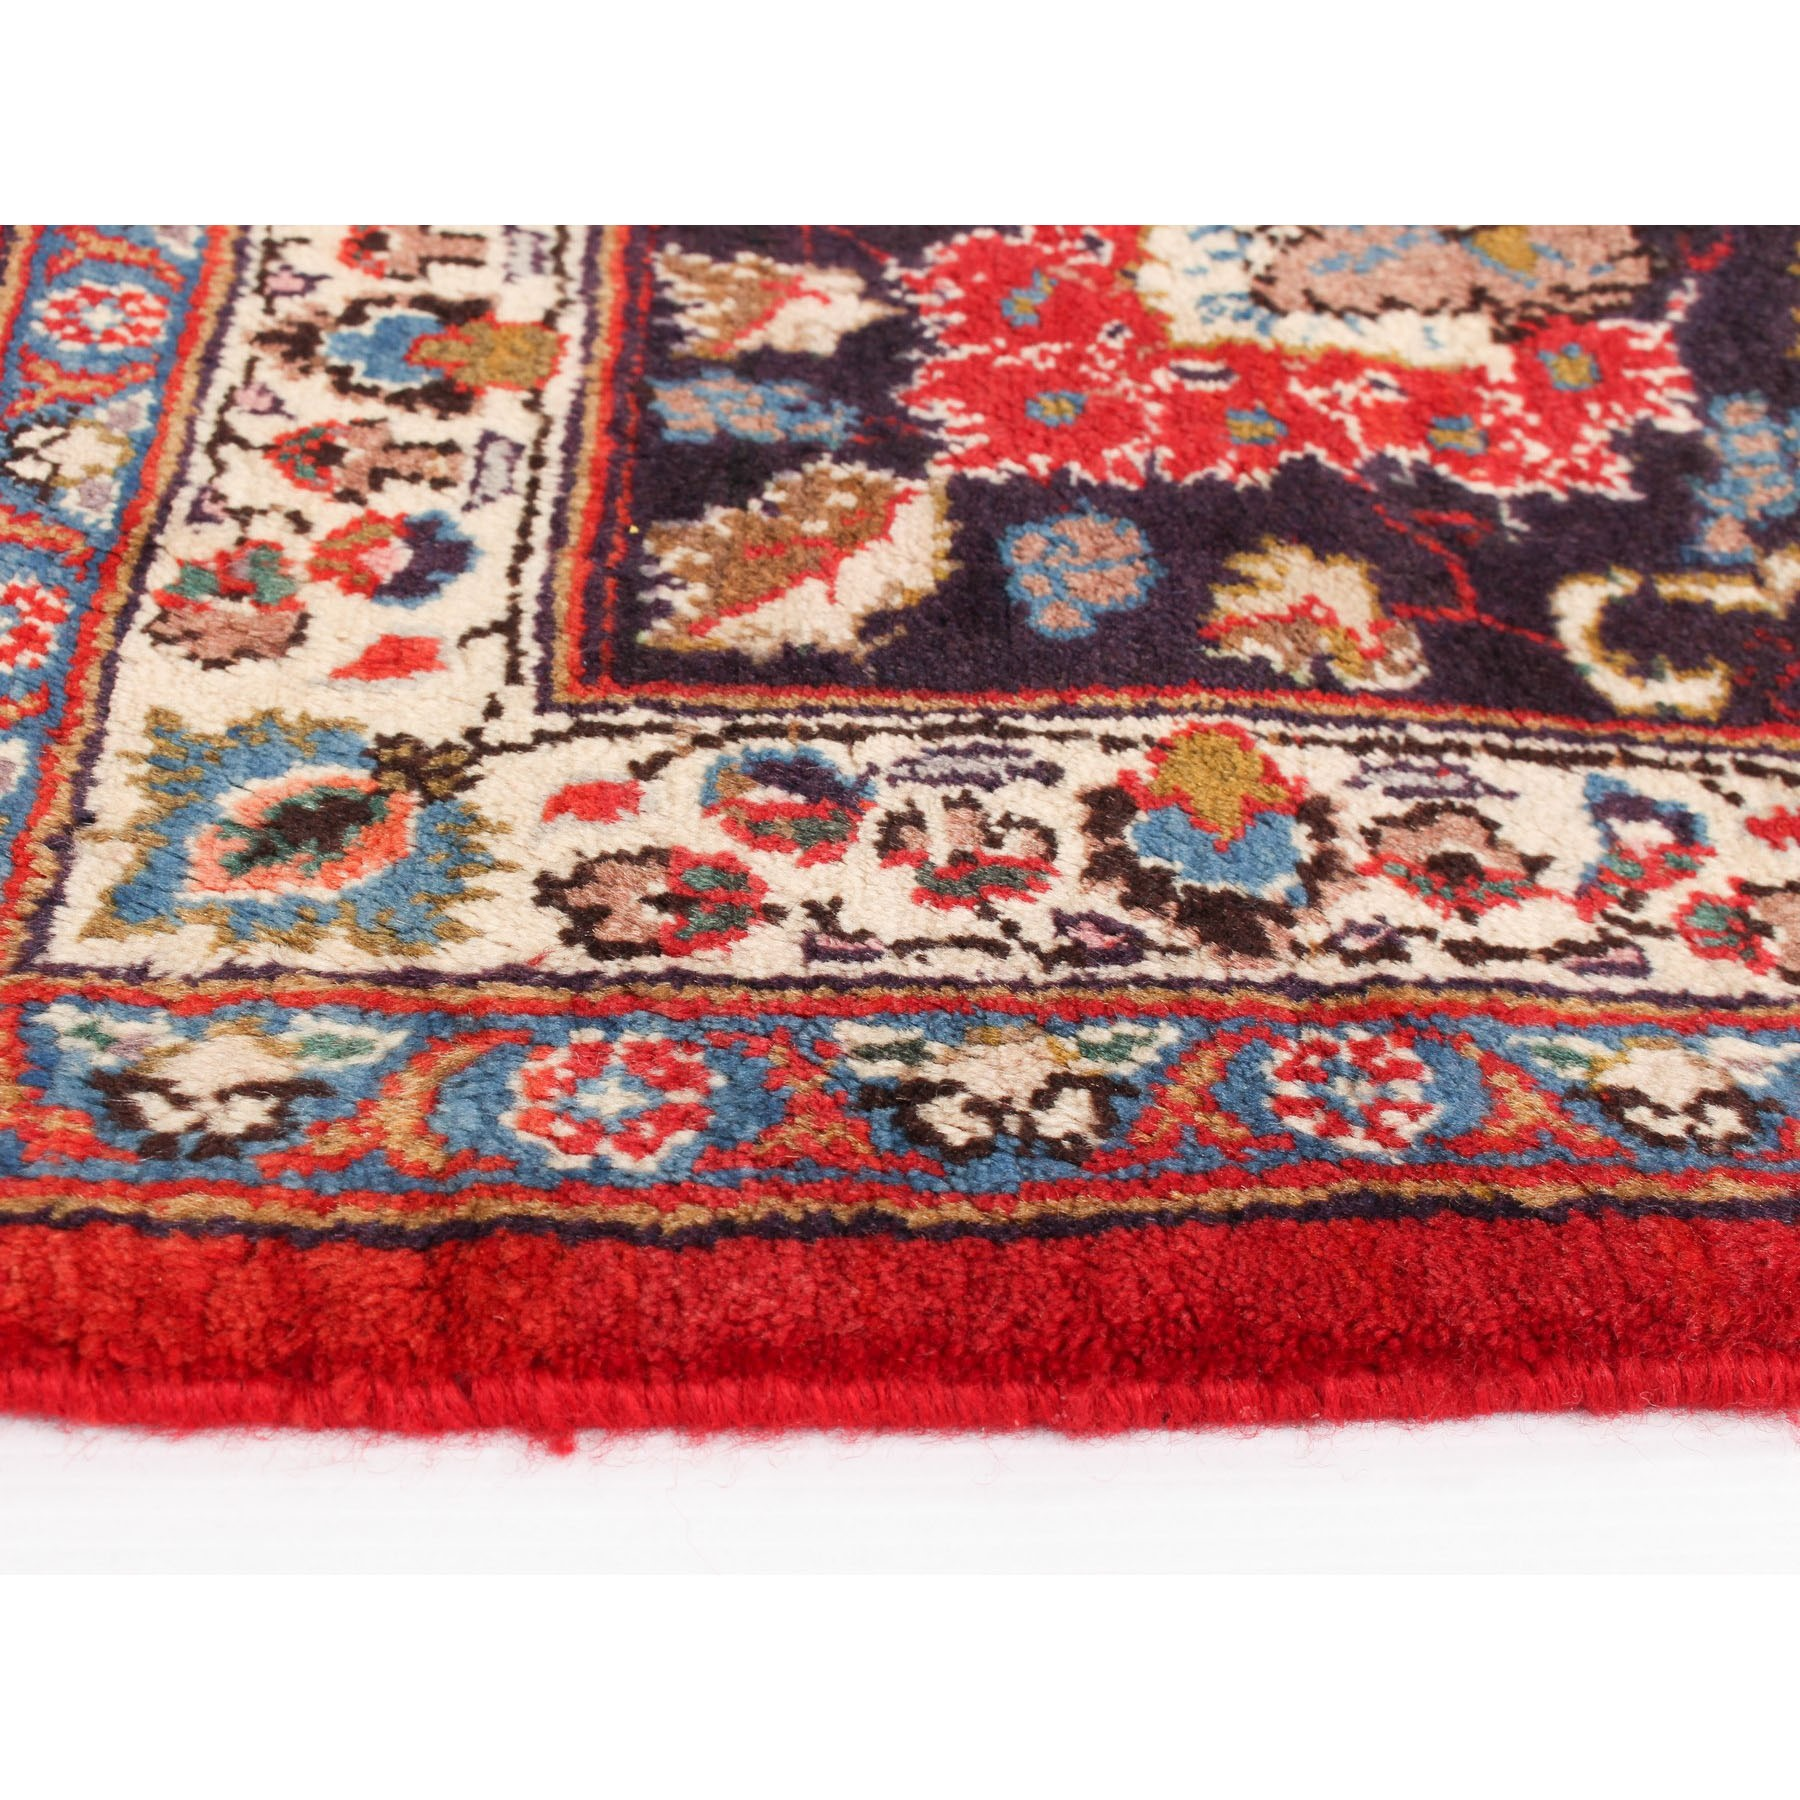 9-6 x12-3  Red Semi Antique Persian Kashan Pure Wool Hand Knotted Oriental Rug